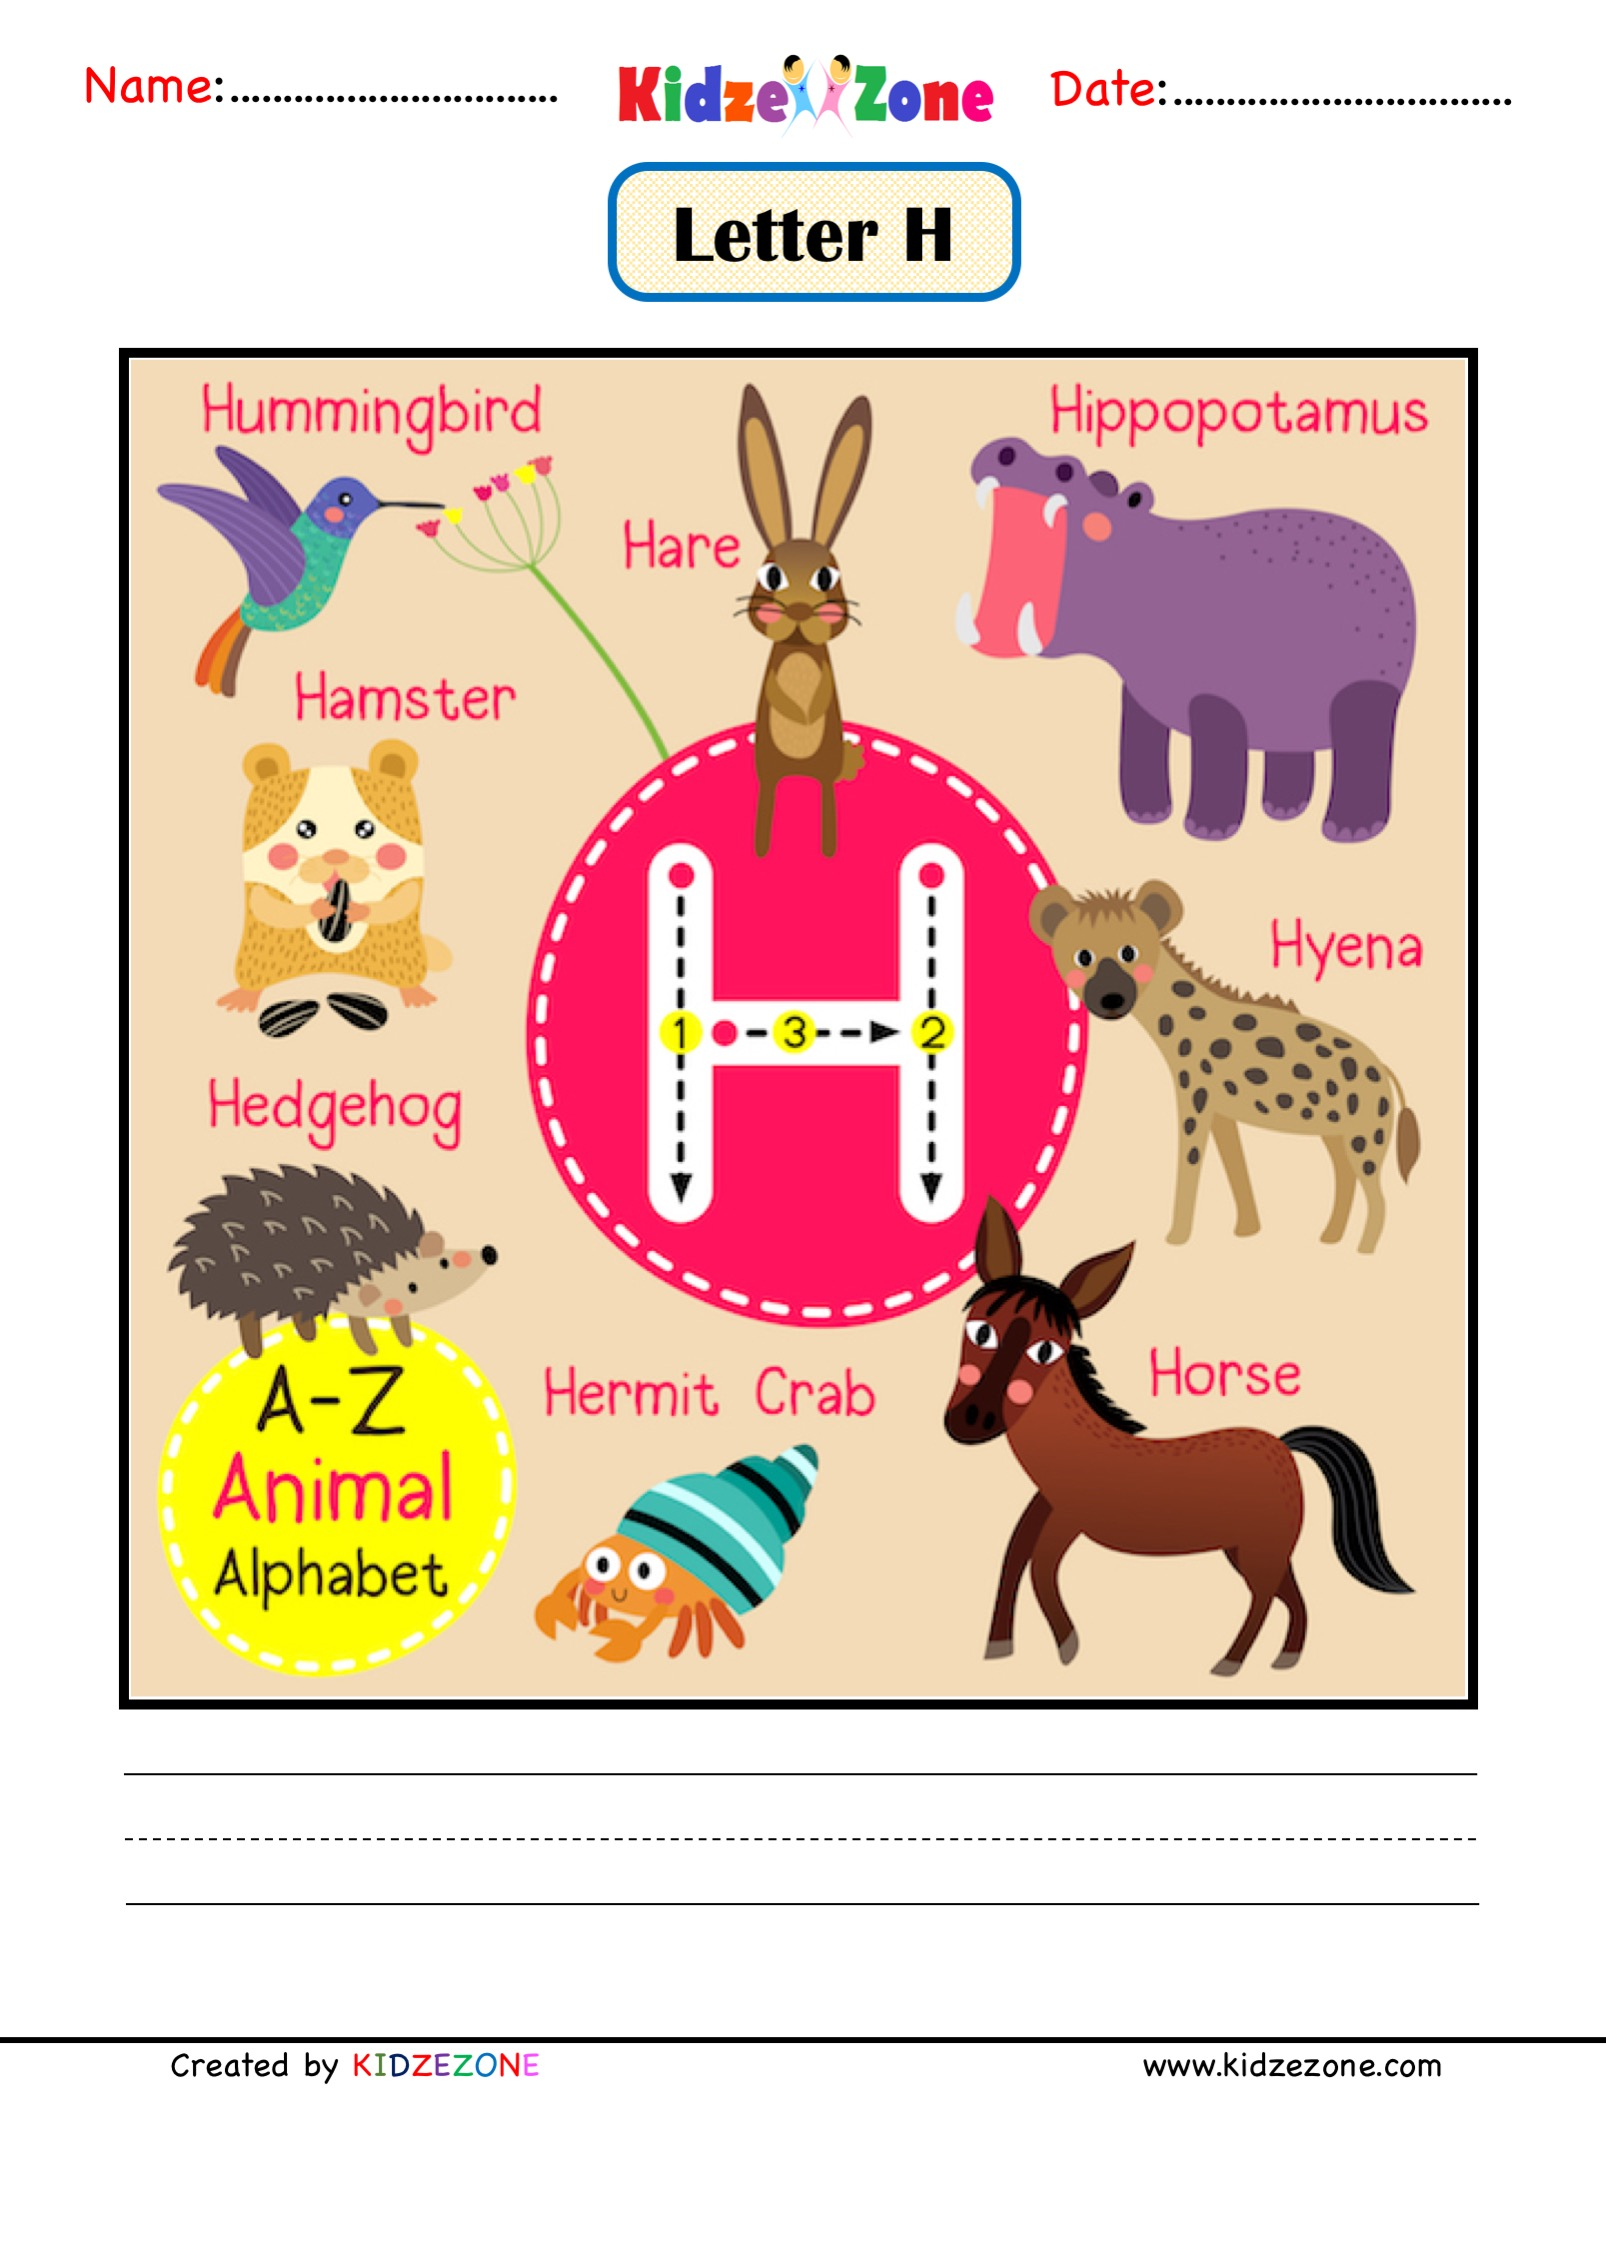 Kindergarten Letter H Animal Picture Cards Worksheet